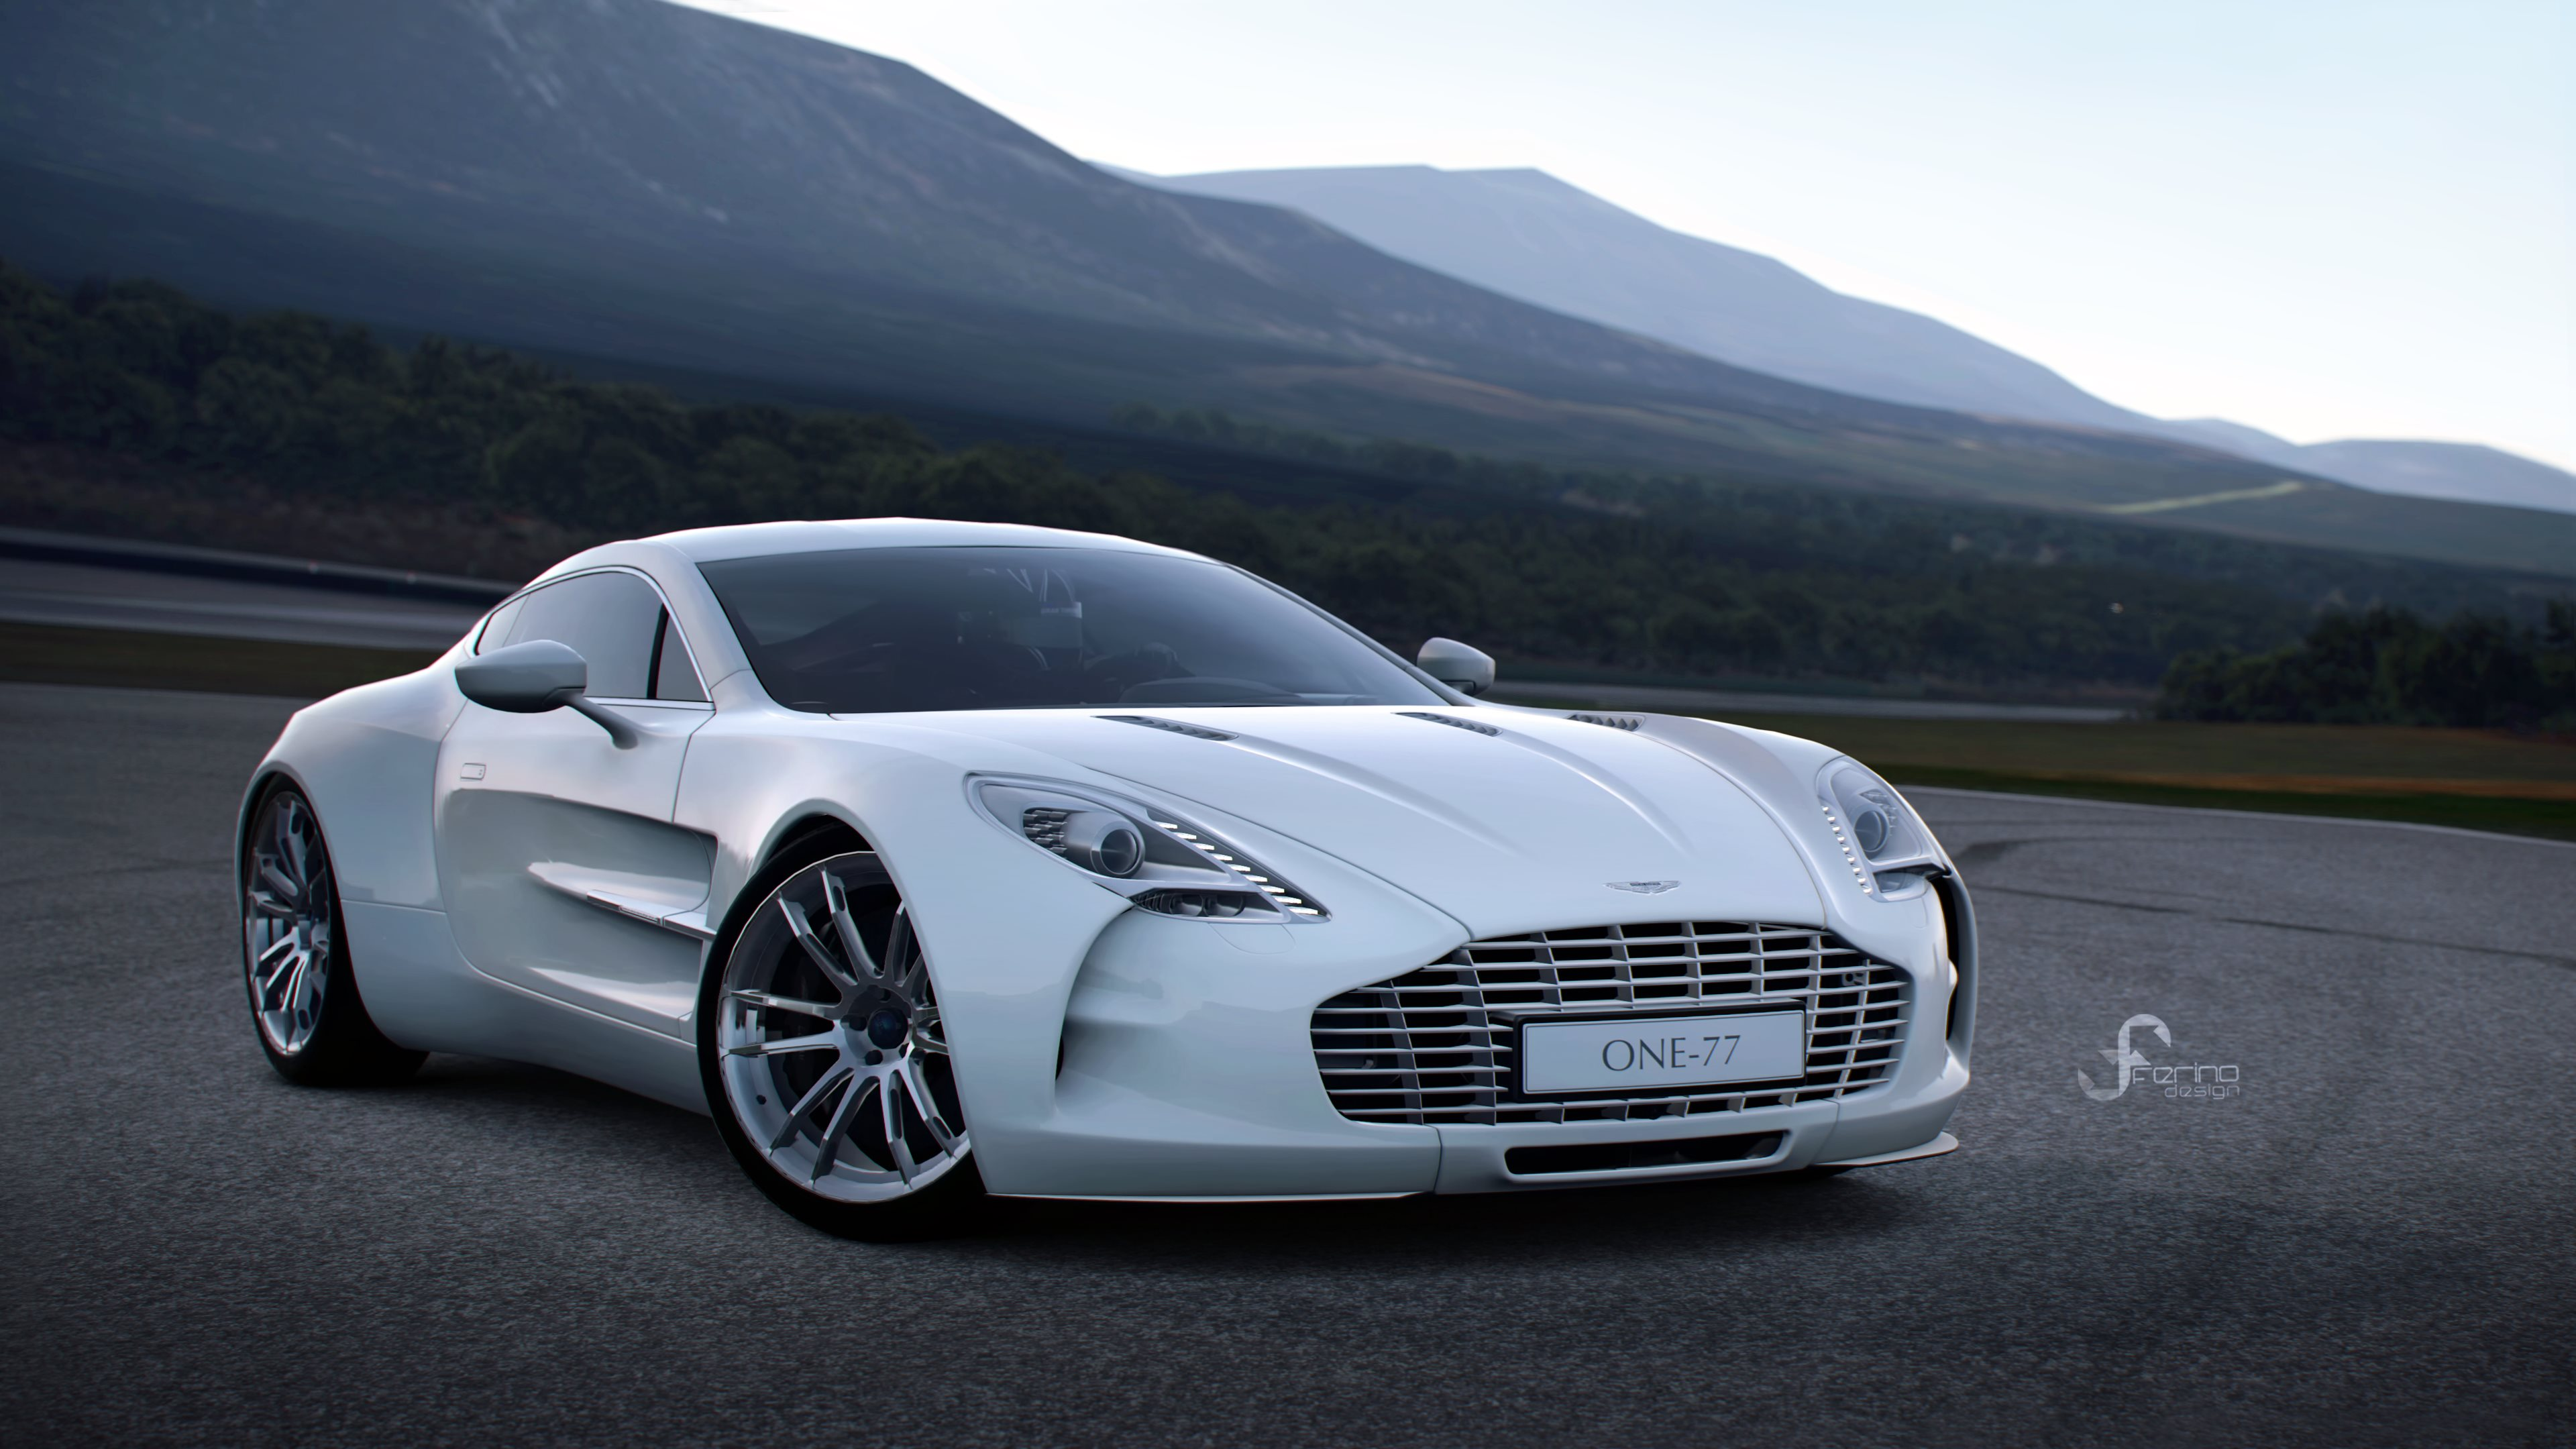 aston martin one 77 wallpaper hd wallpapers. Black Bedroom Furniture Sets. Home Design Ideas